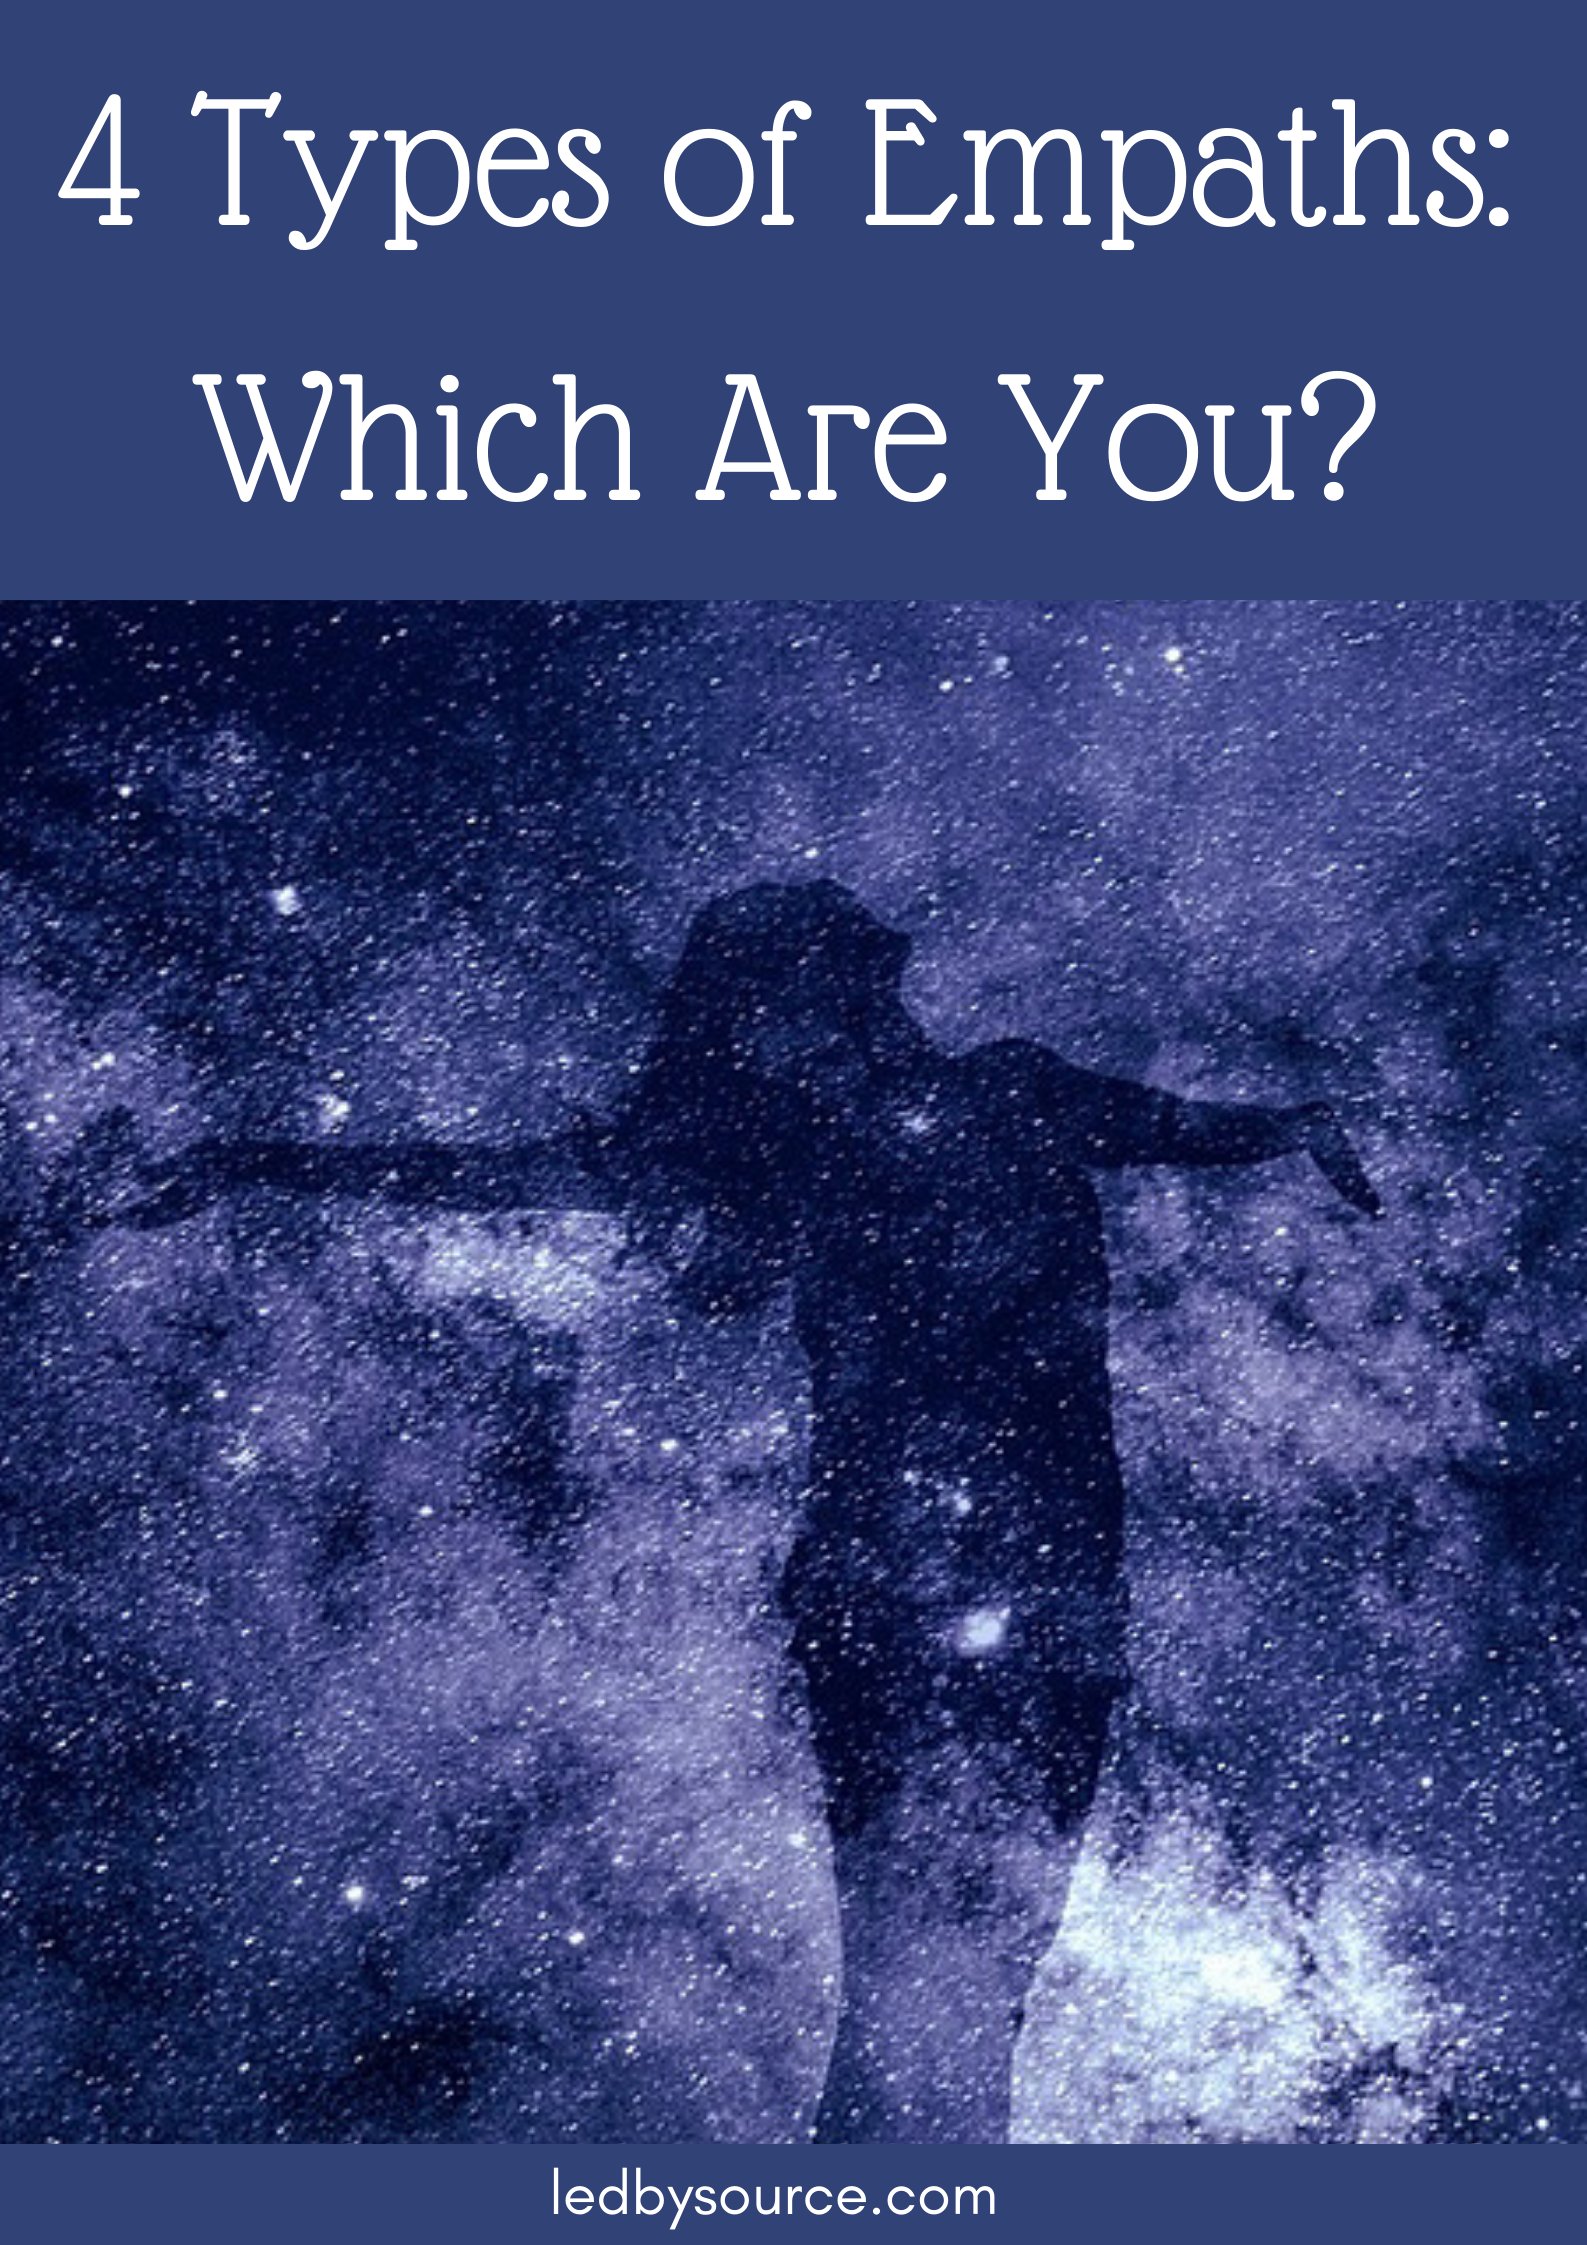 4 Types of Empaths: Which Are You? – Ledbysource